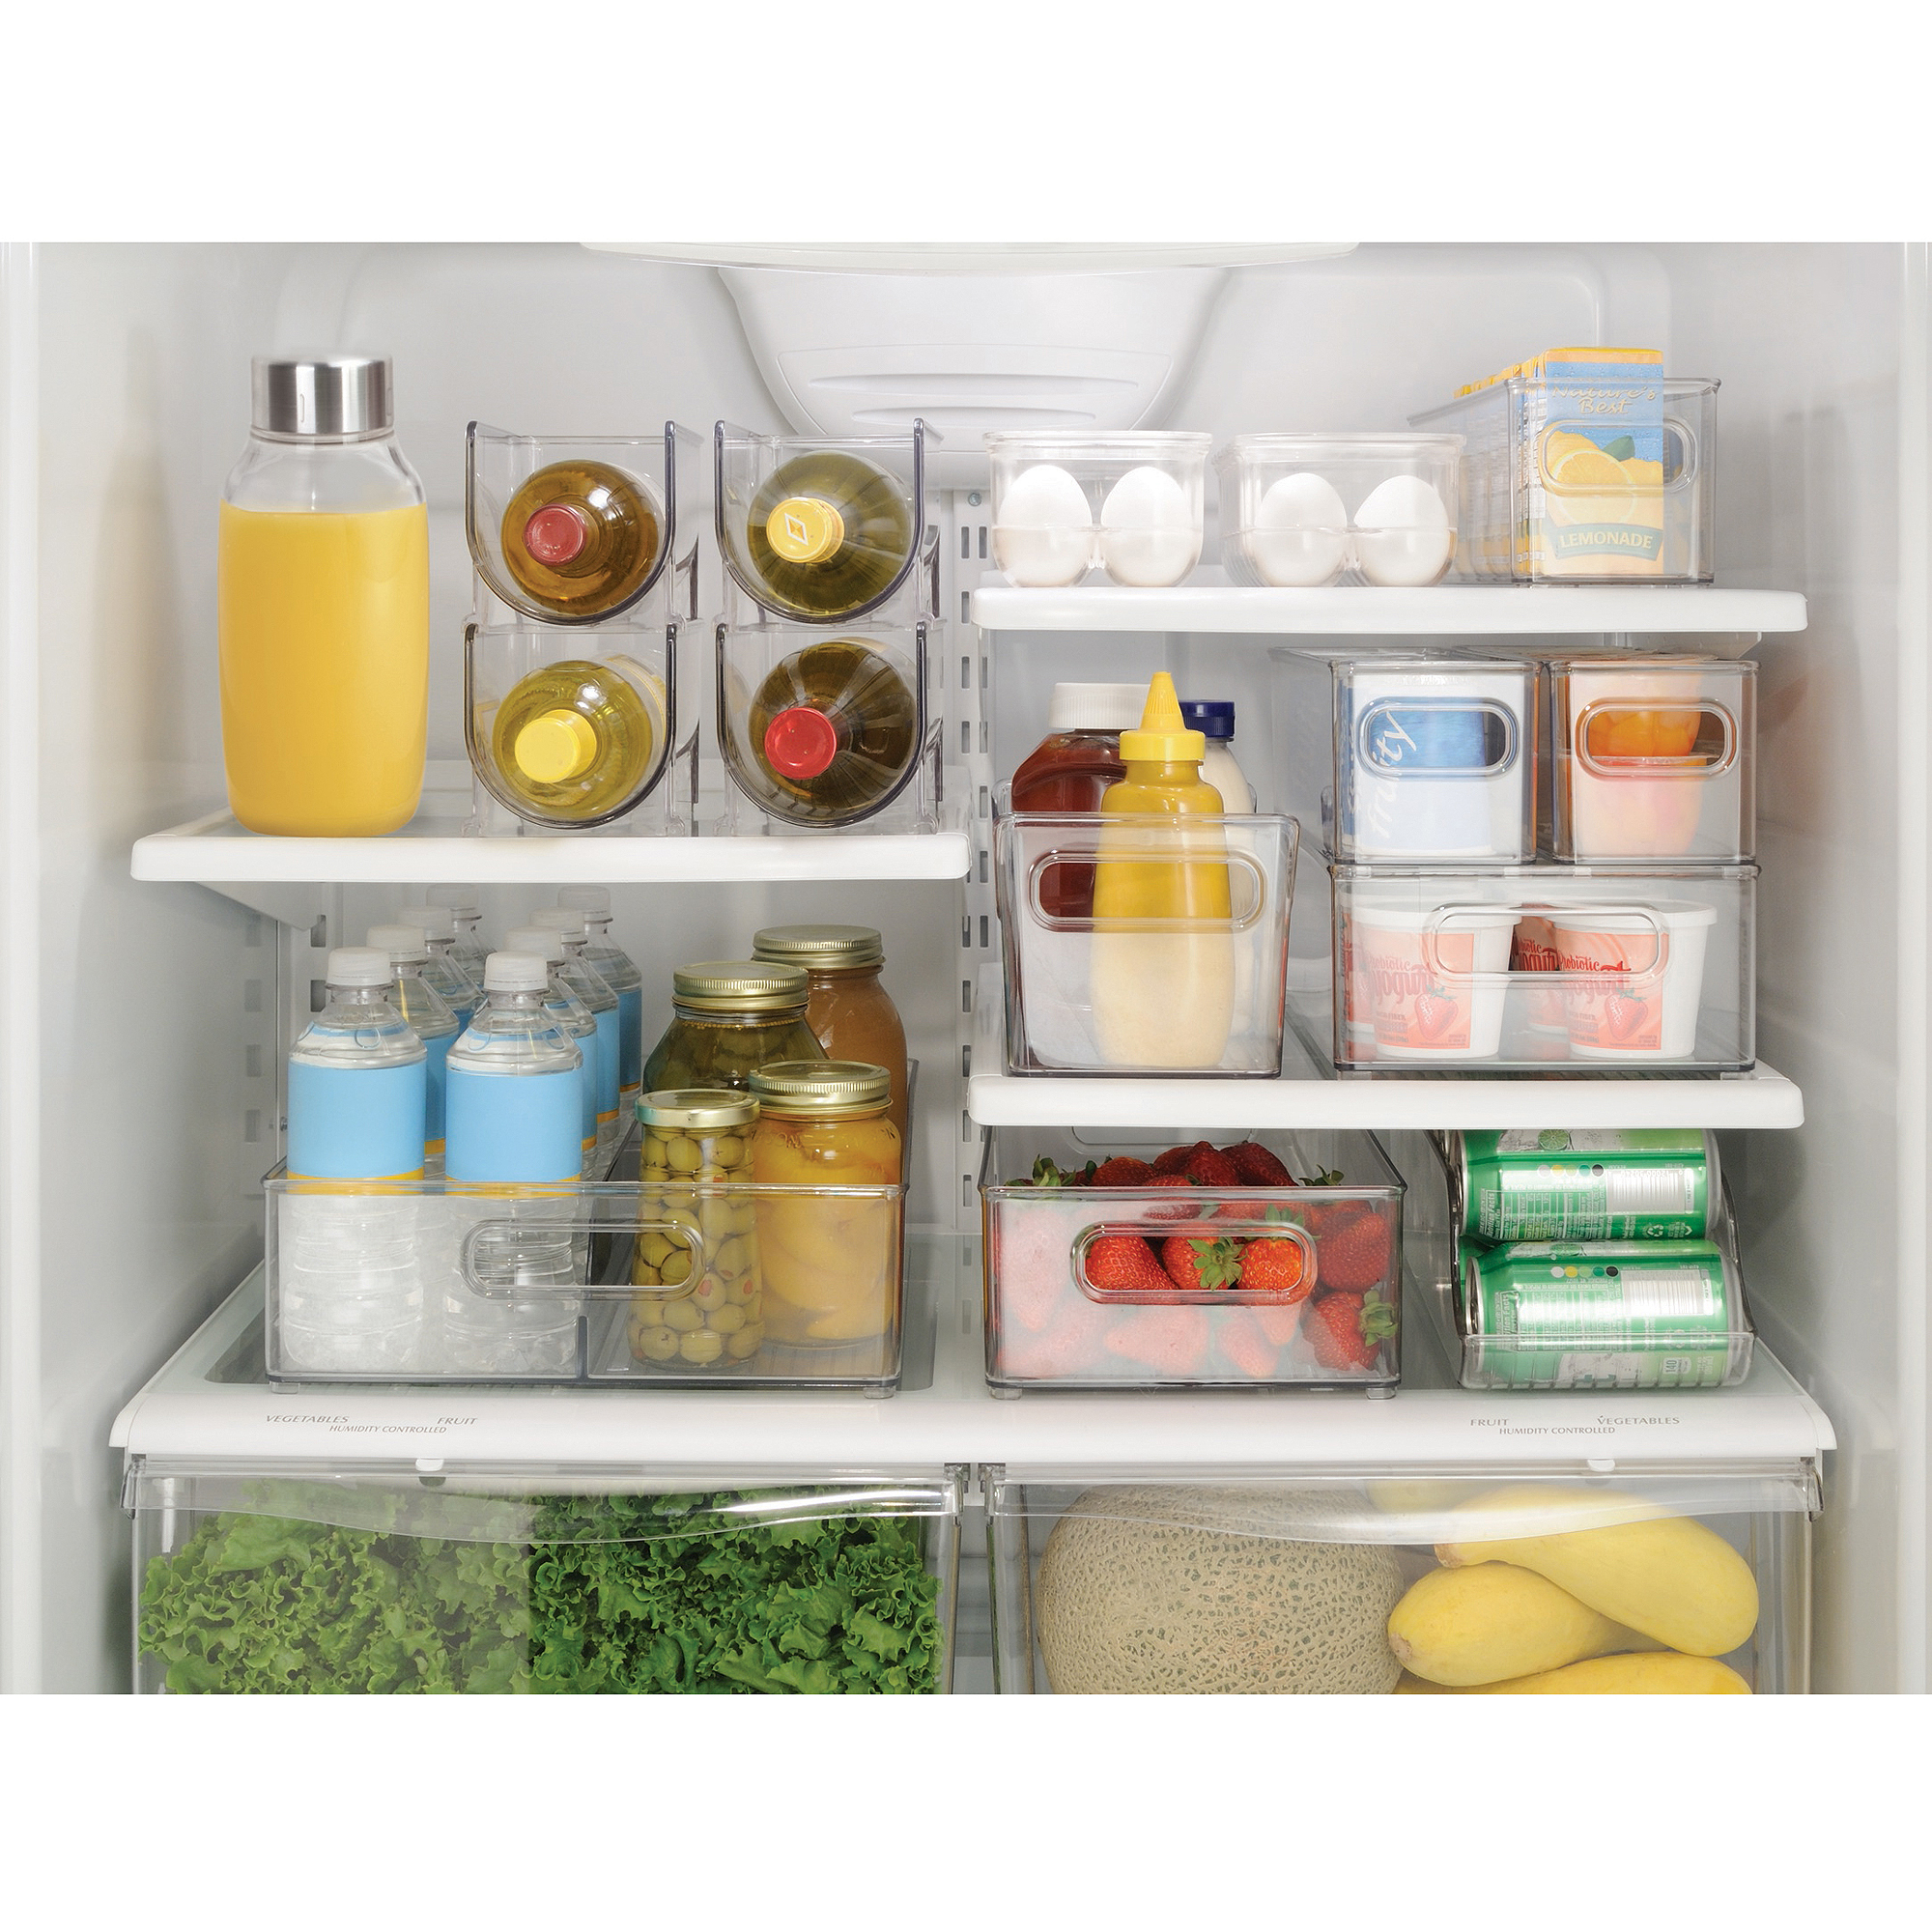 InterDesign Refrigerator Storage Organizer for Kitchen Covered Egg